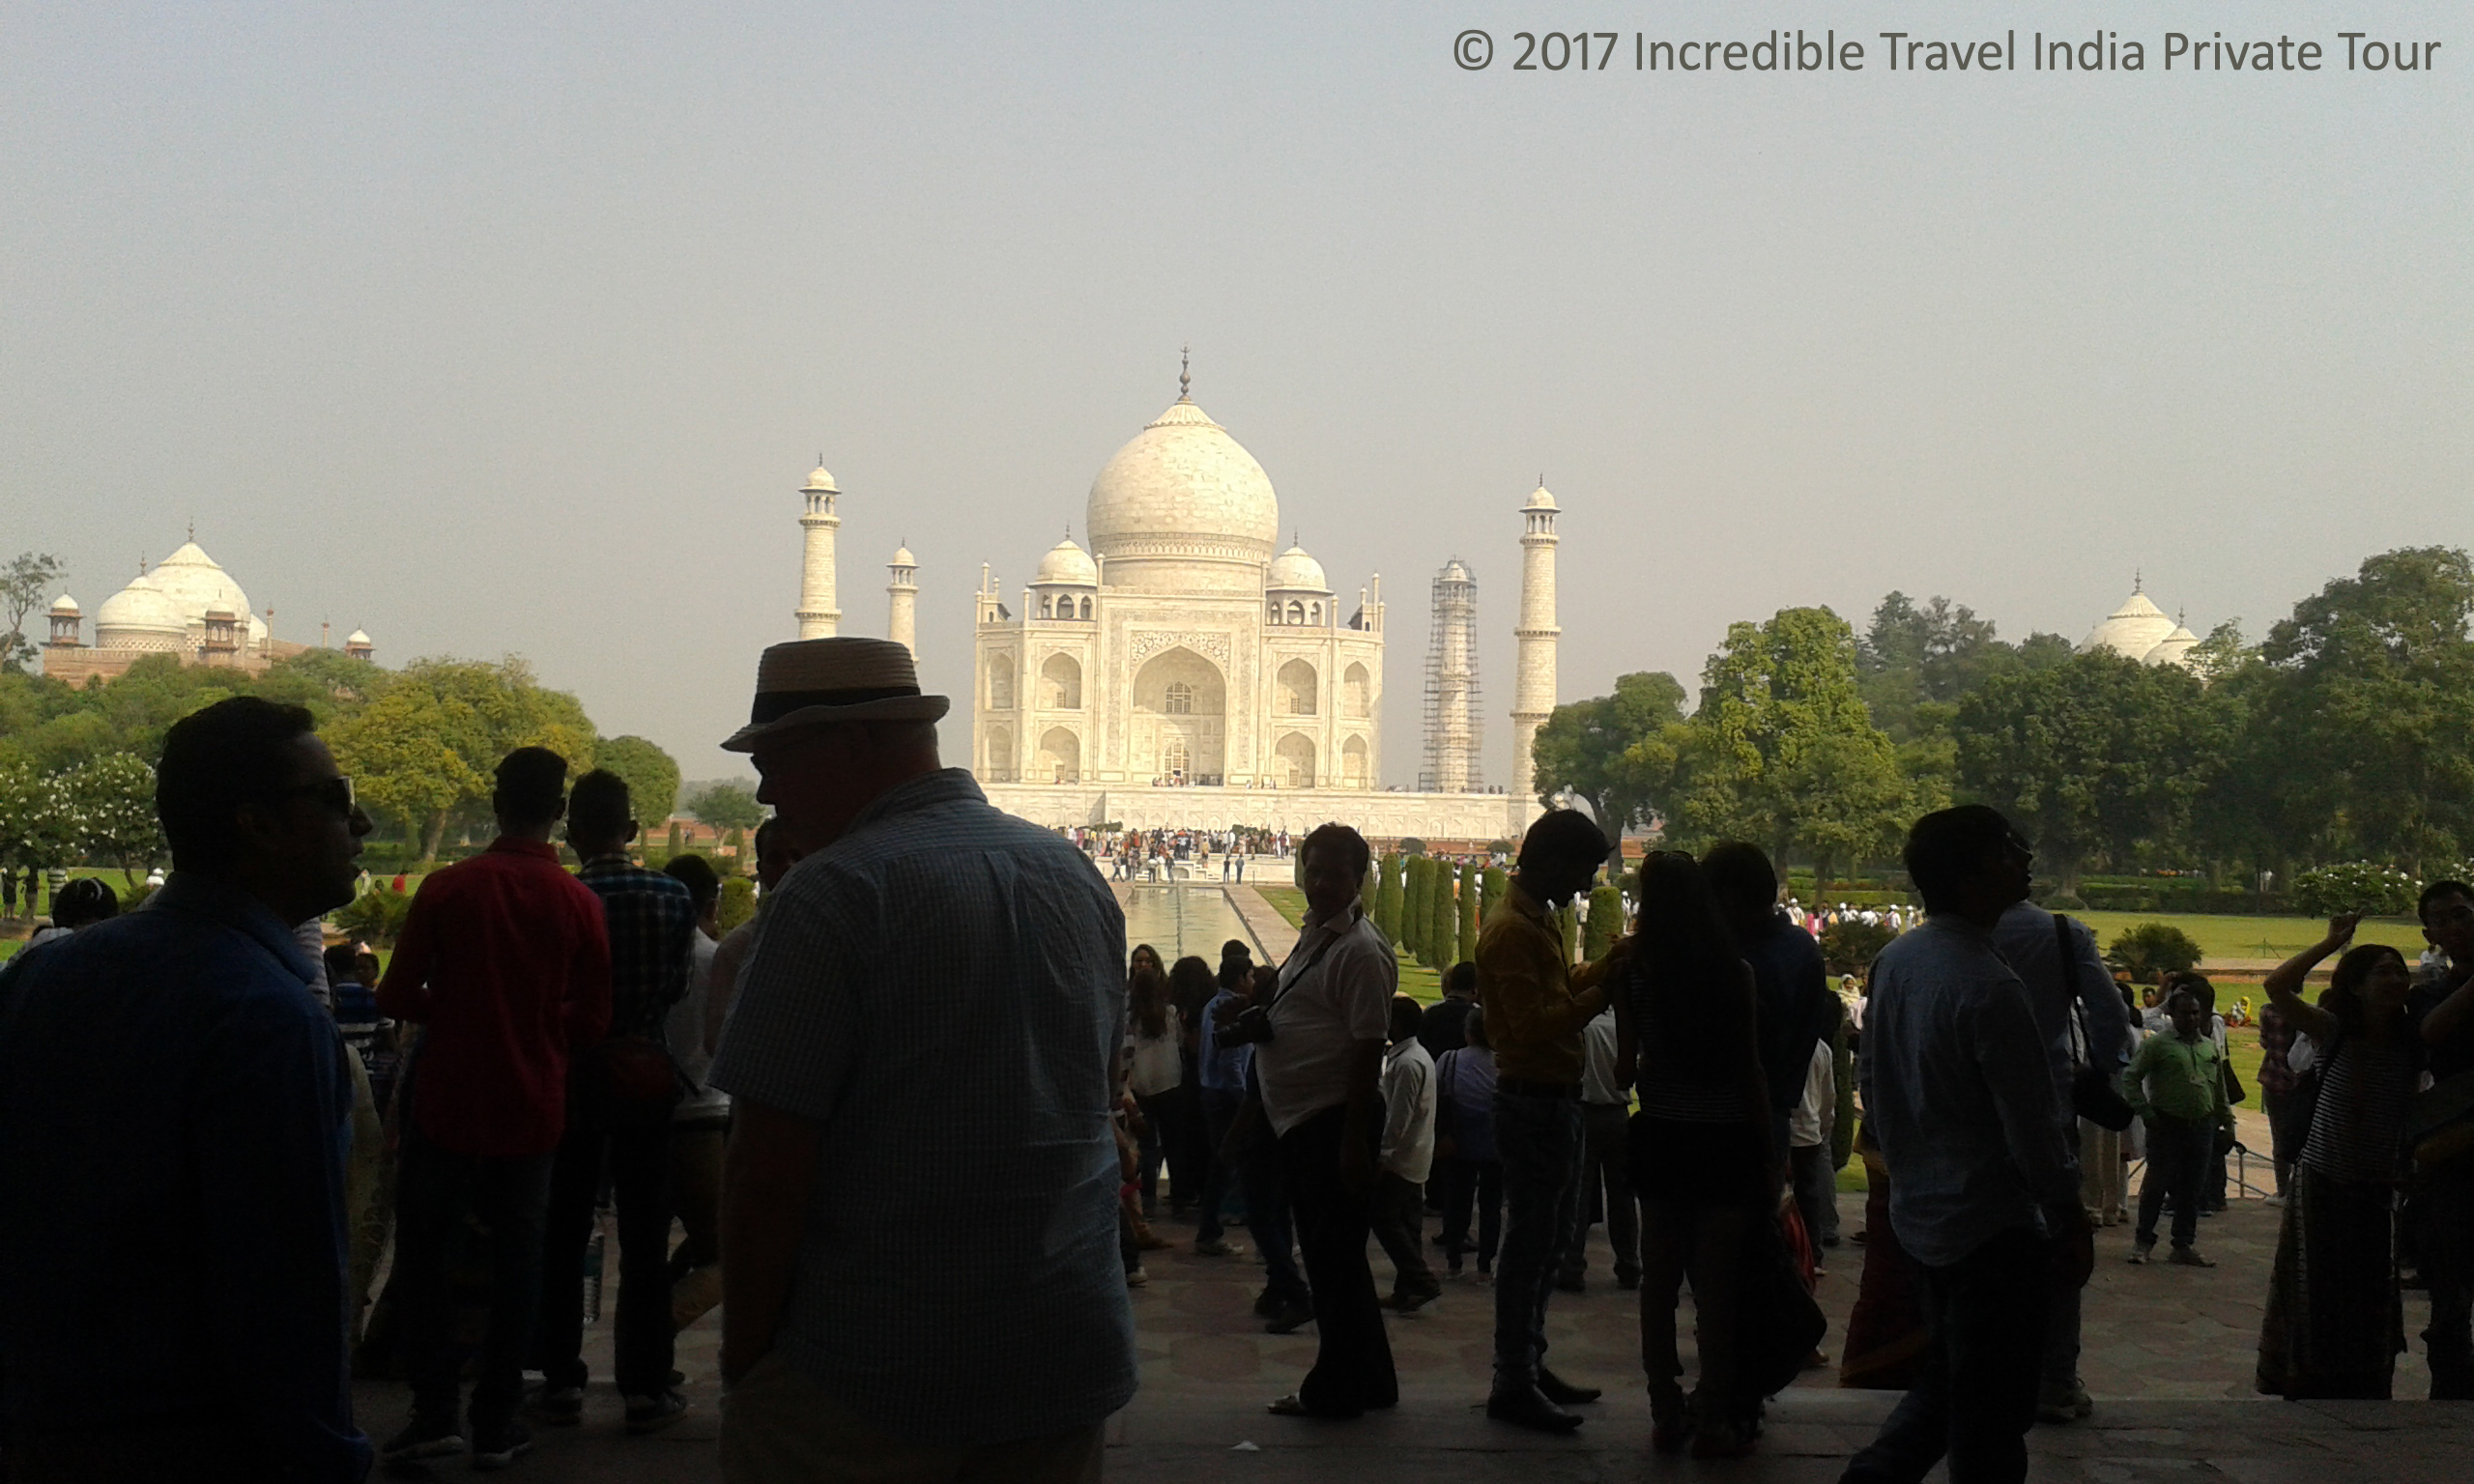 taj_mahal_agra_tour_©_2017_Incredible_Travel_India_Private_Tour